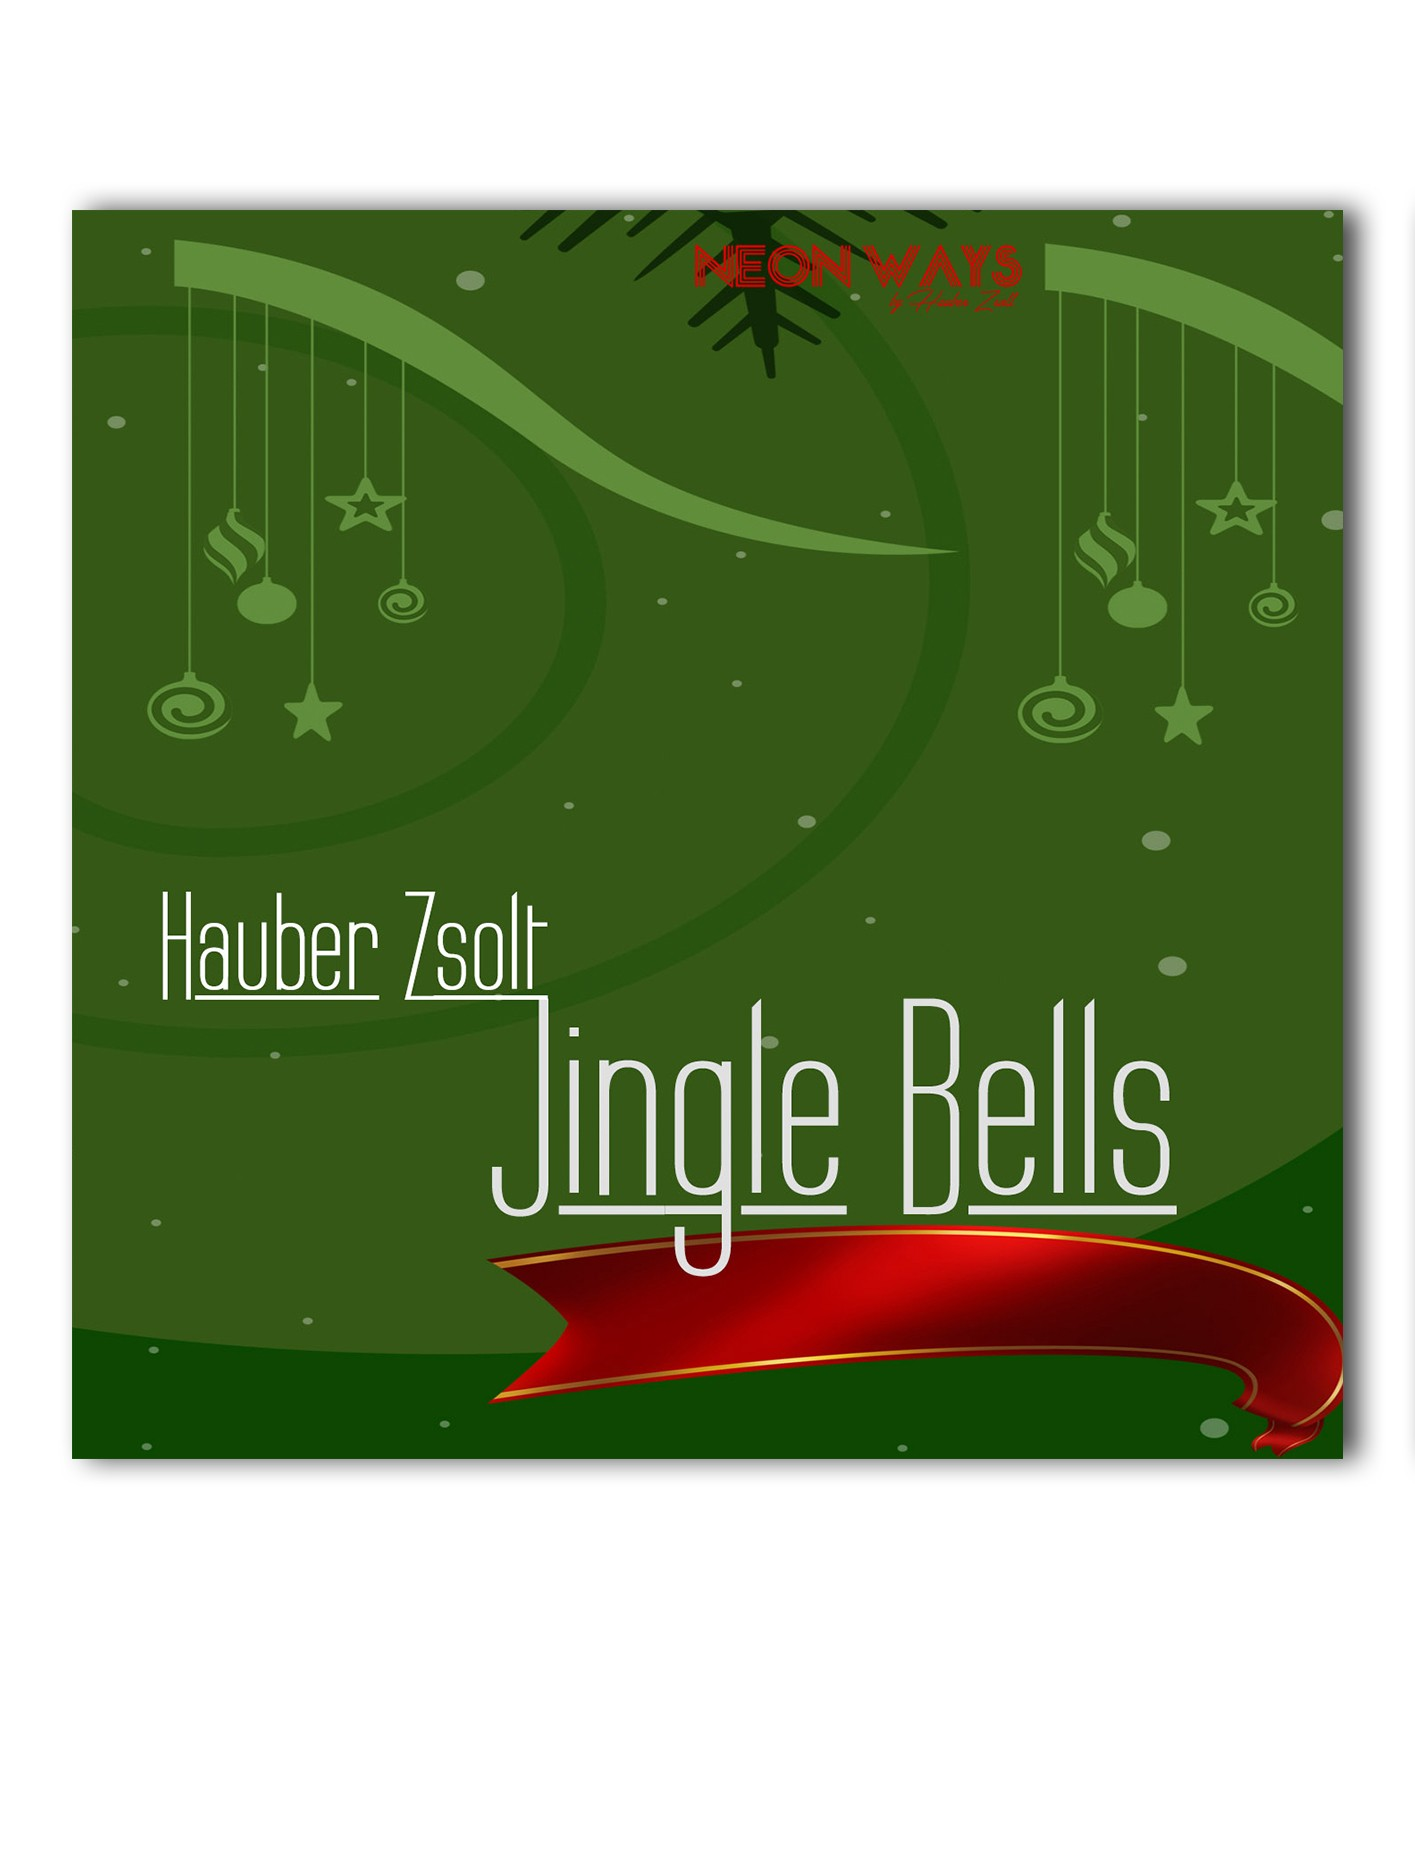 HAUBER ZSOLT JINGLE BELLS / CD